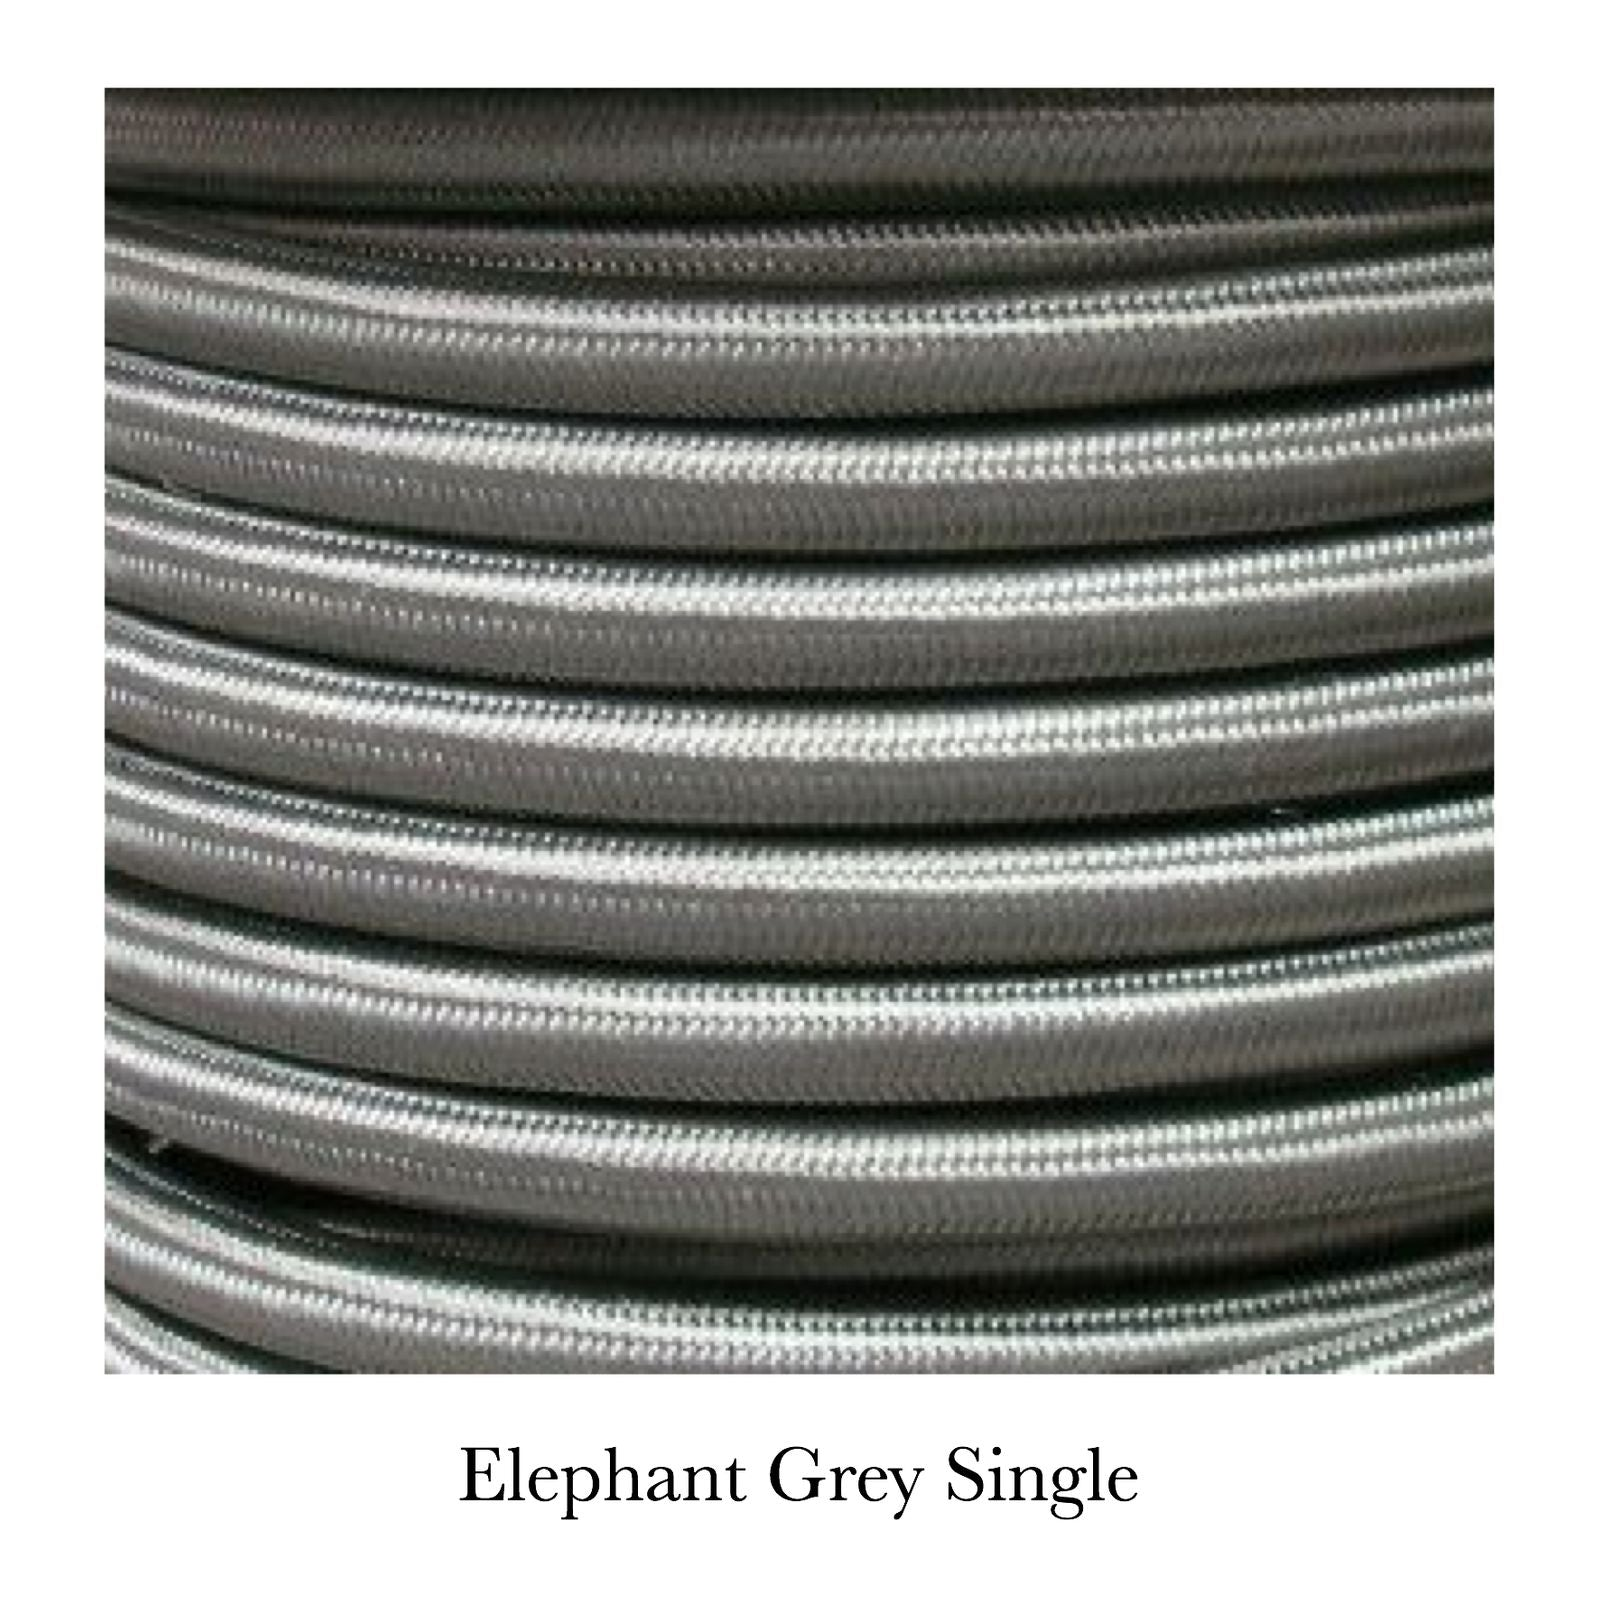 Elephant Grey Single